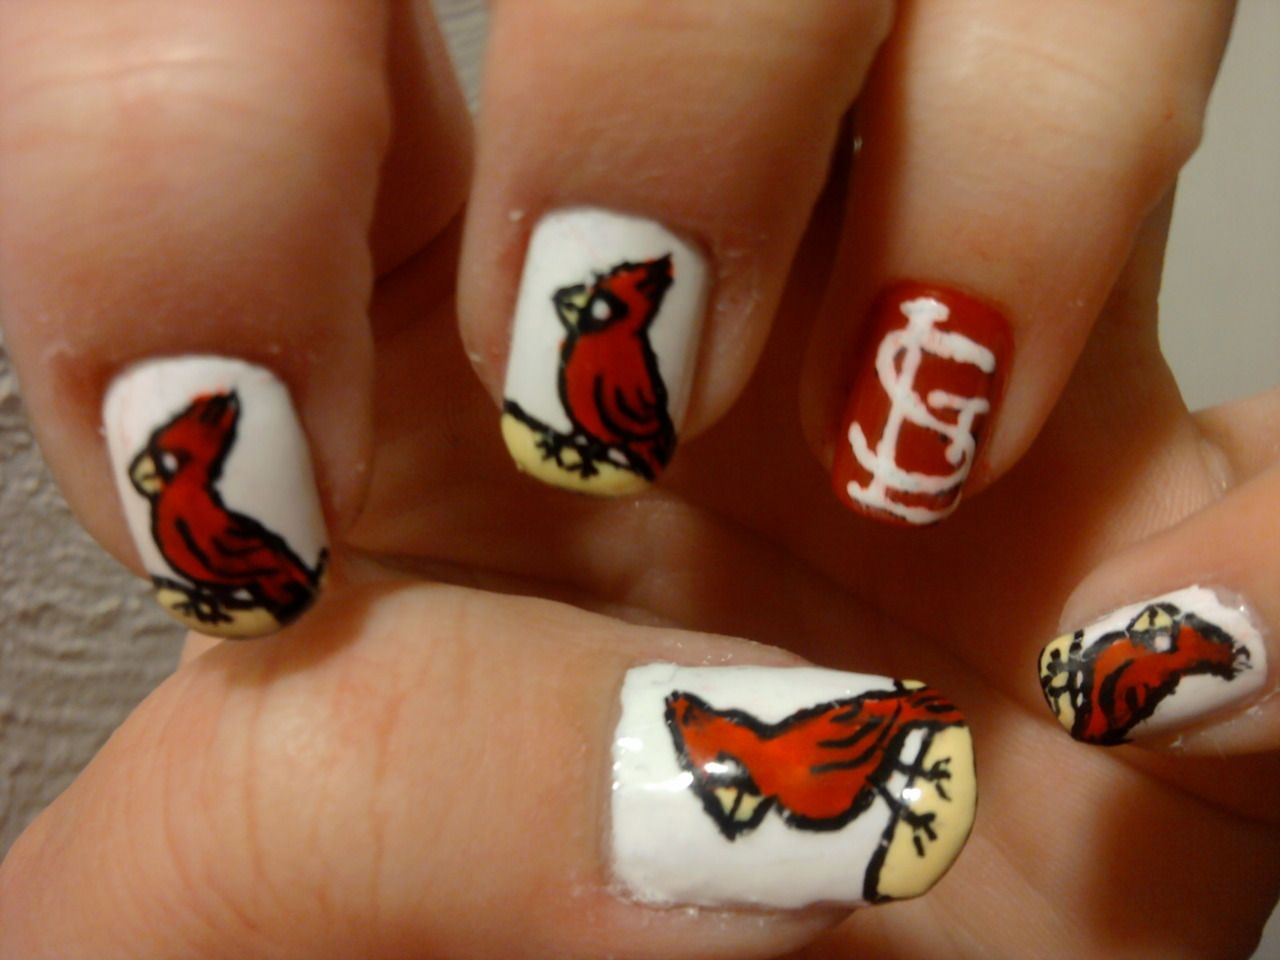 #St. Louis Cardinals are on a hot streak. Check out some Cardinal Nation nails. Courtesy of @ EmilySmithson